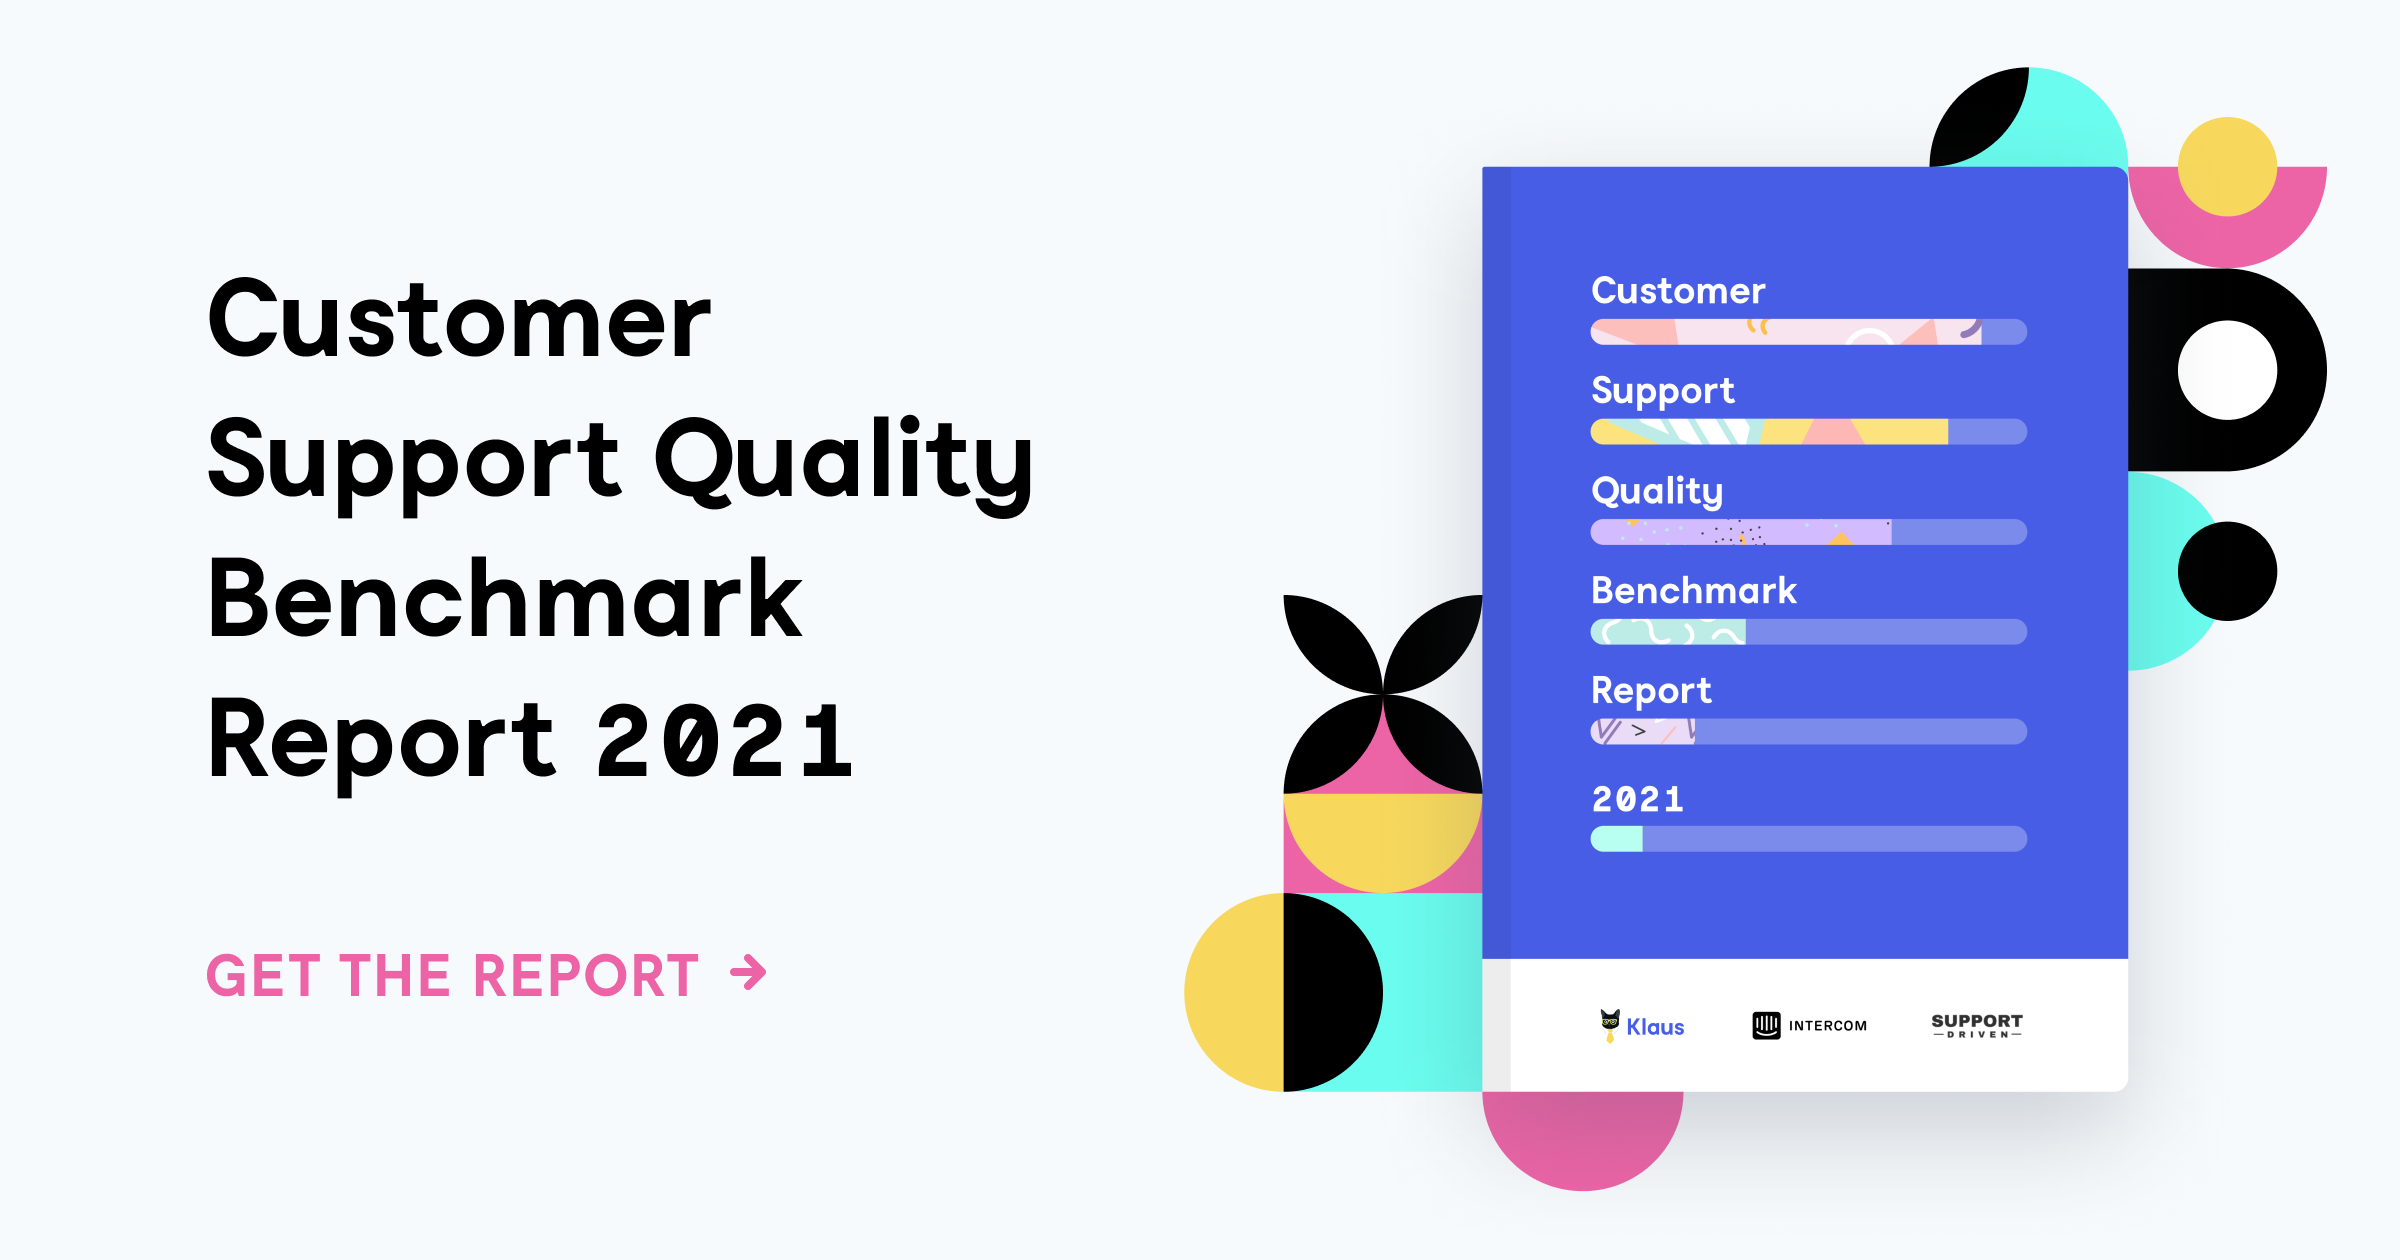 Customer Support Quality Benchmark Report